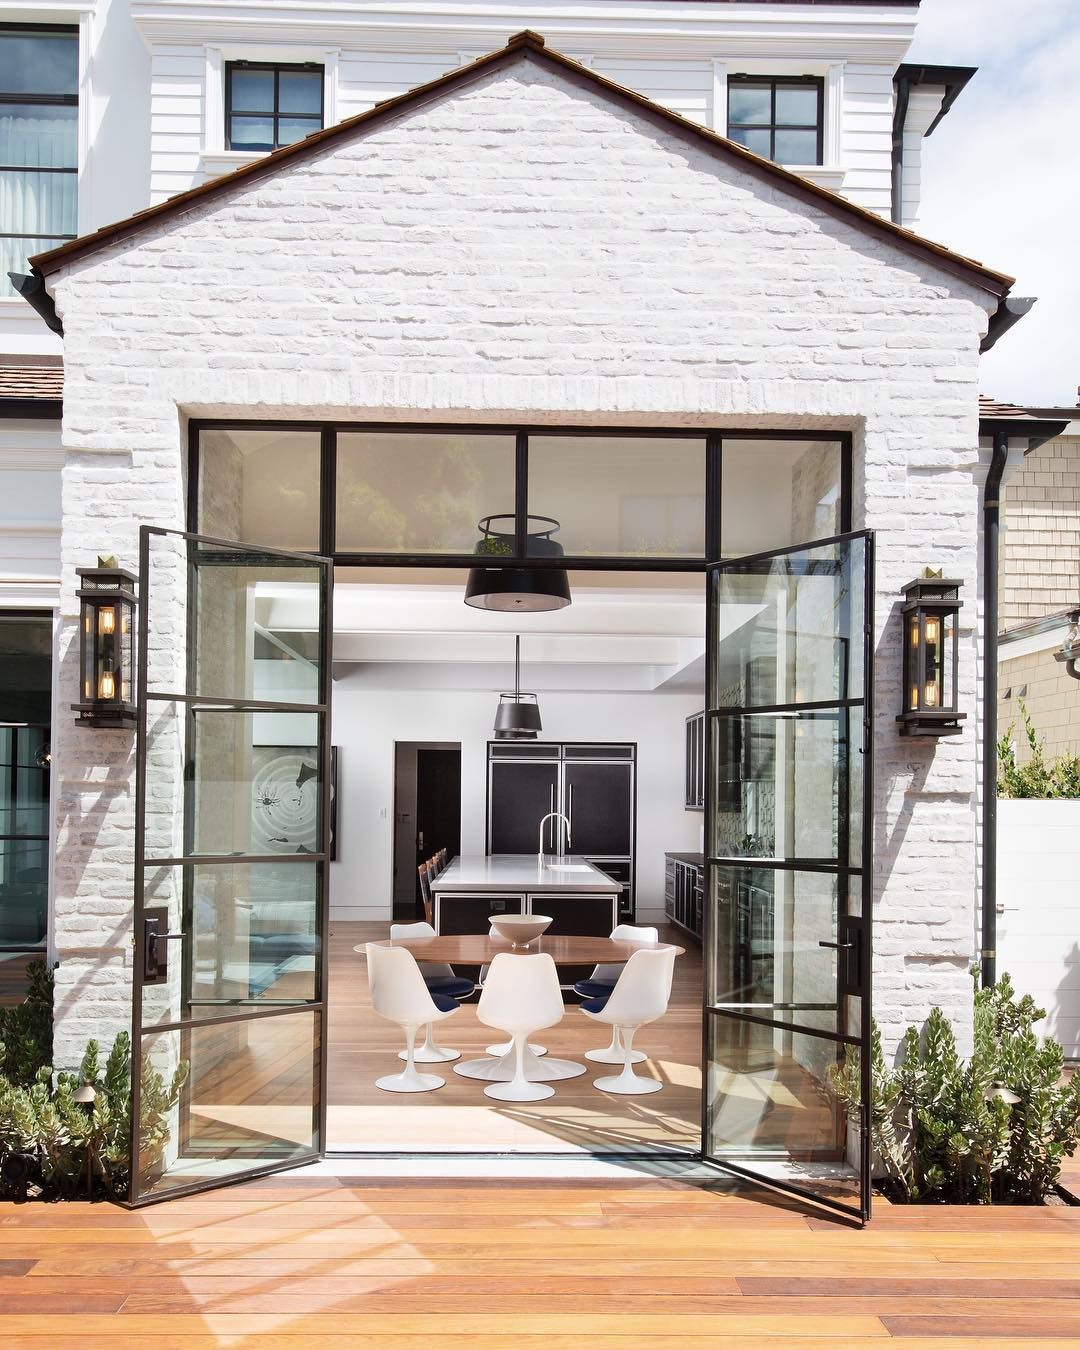 The Most Beautiful French Doors We Ever Did See Builder Pattersoncustomhomes L White Exterior Houses Modern Farmhouse Exterior House Designs Exterior